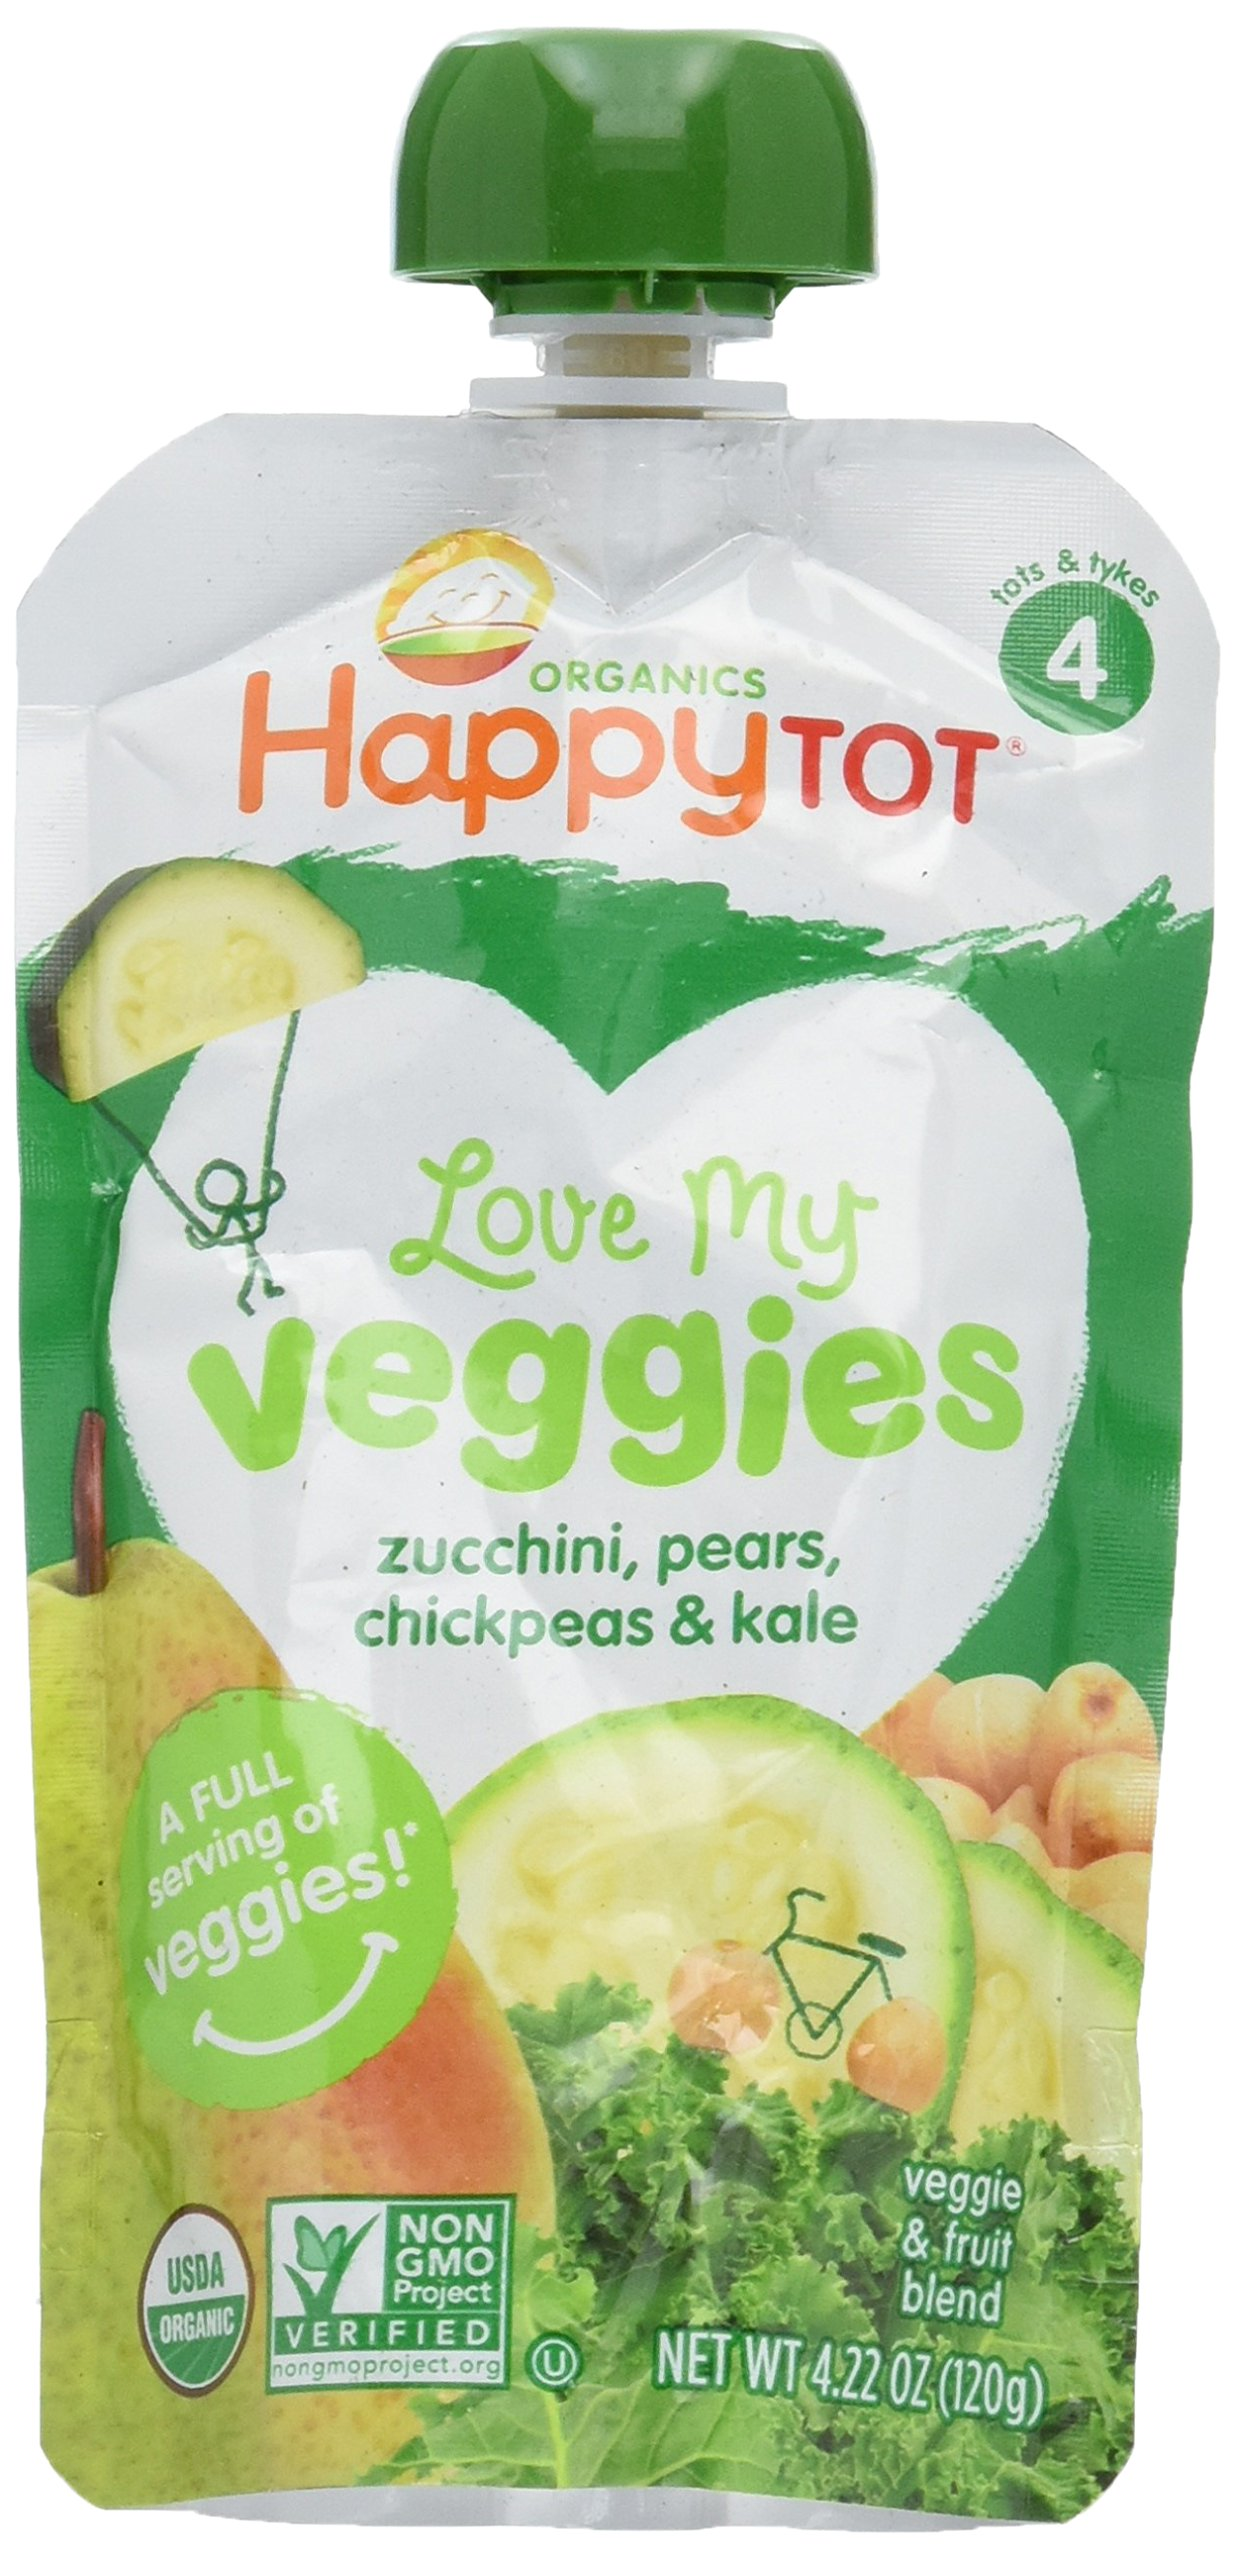 Happy Tot Organic Stage 4 Baby Food, Love My Veggies, Zucchini/Pear/Chickpeas & Kale, 4.2 Ounce (Pack of 16)